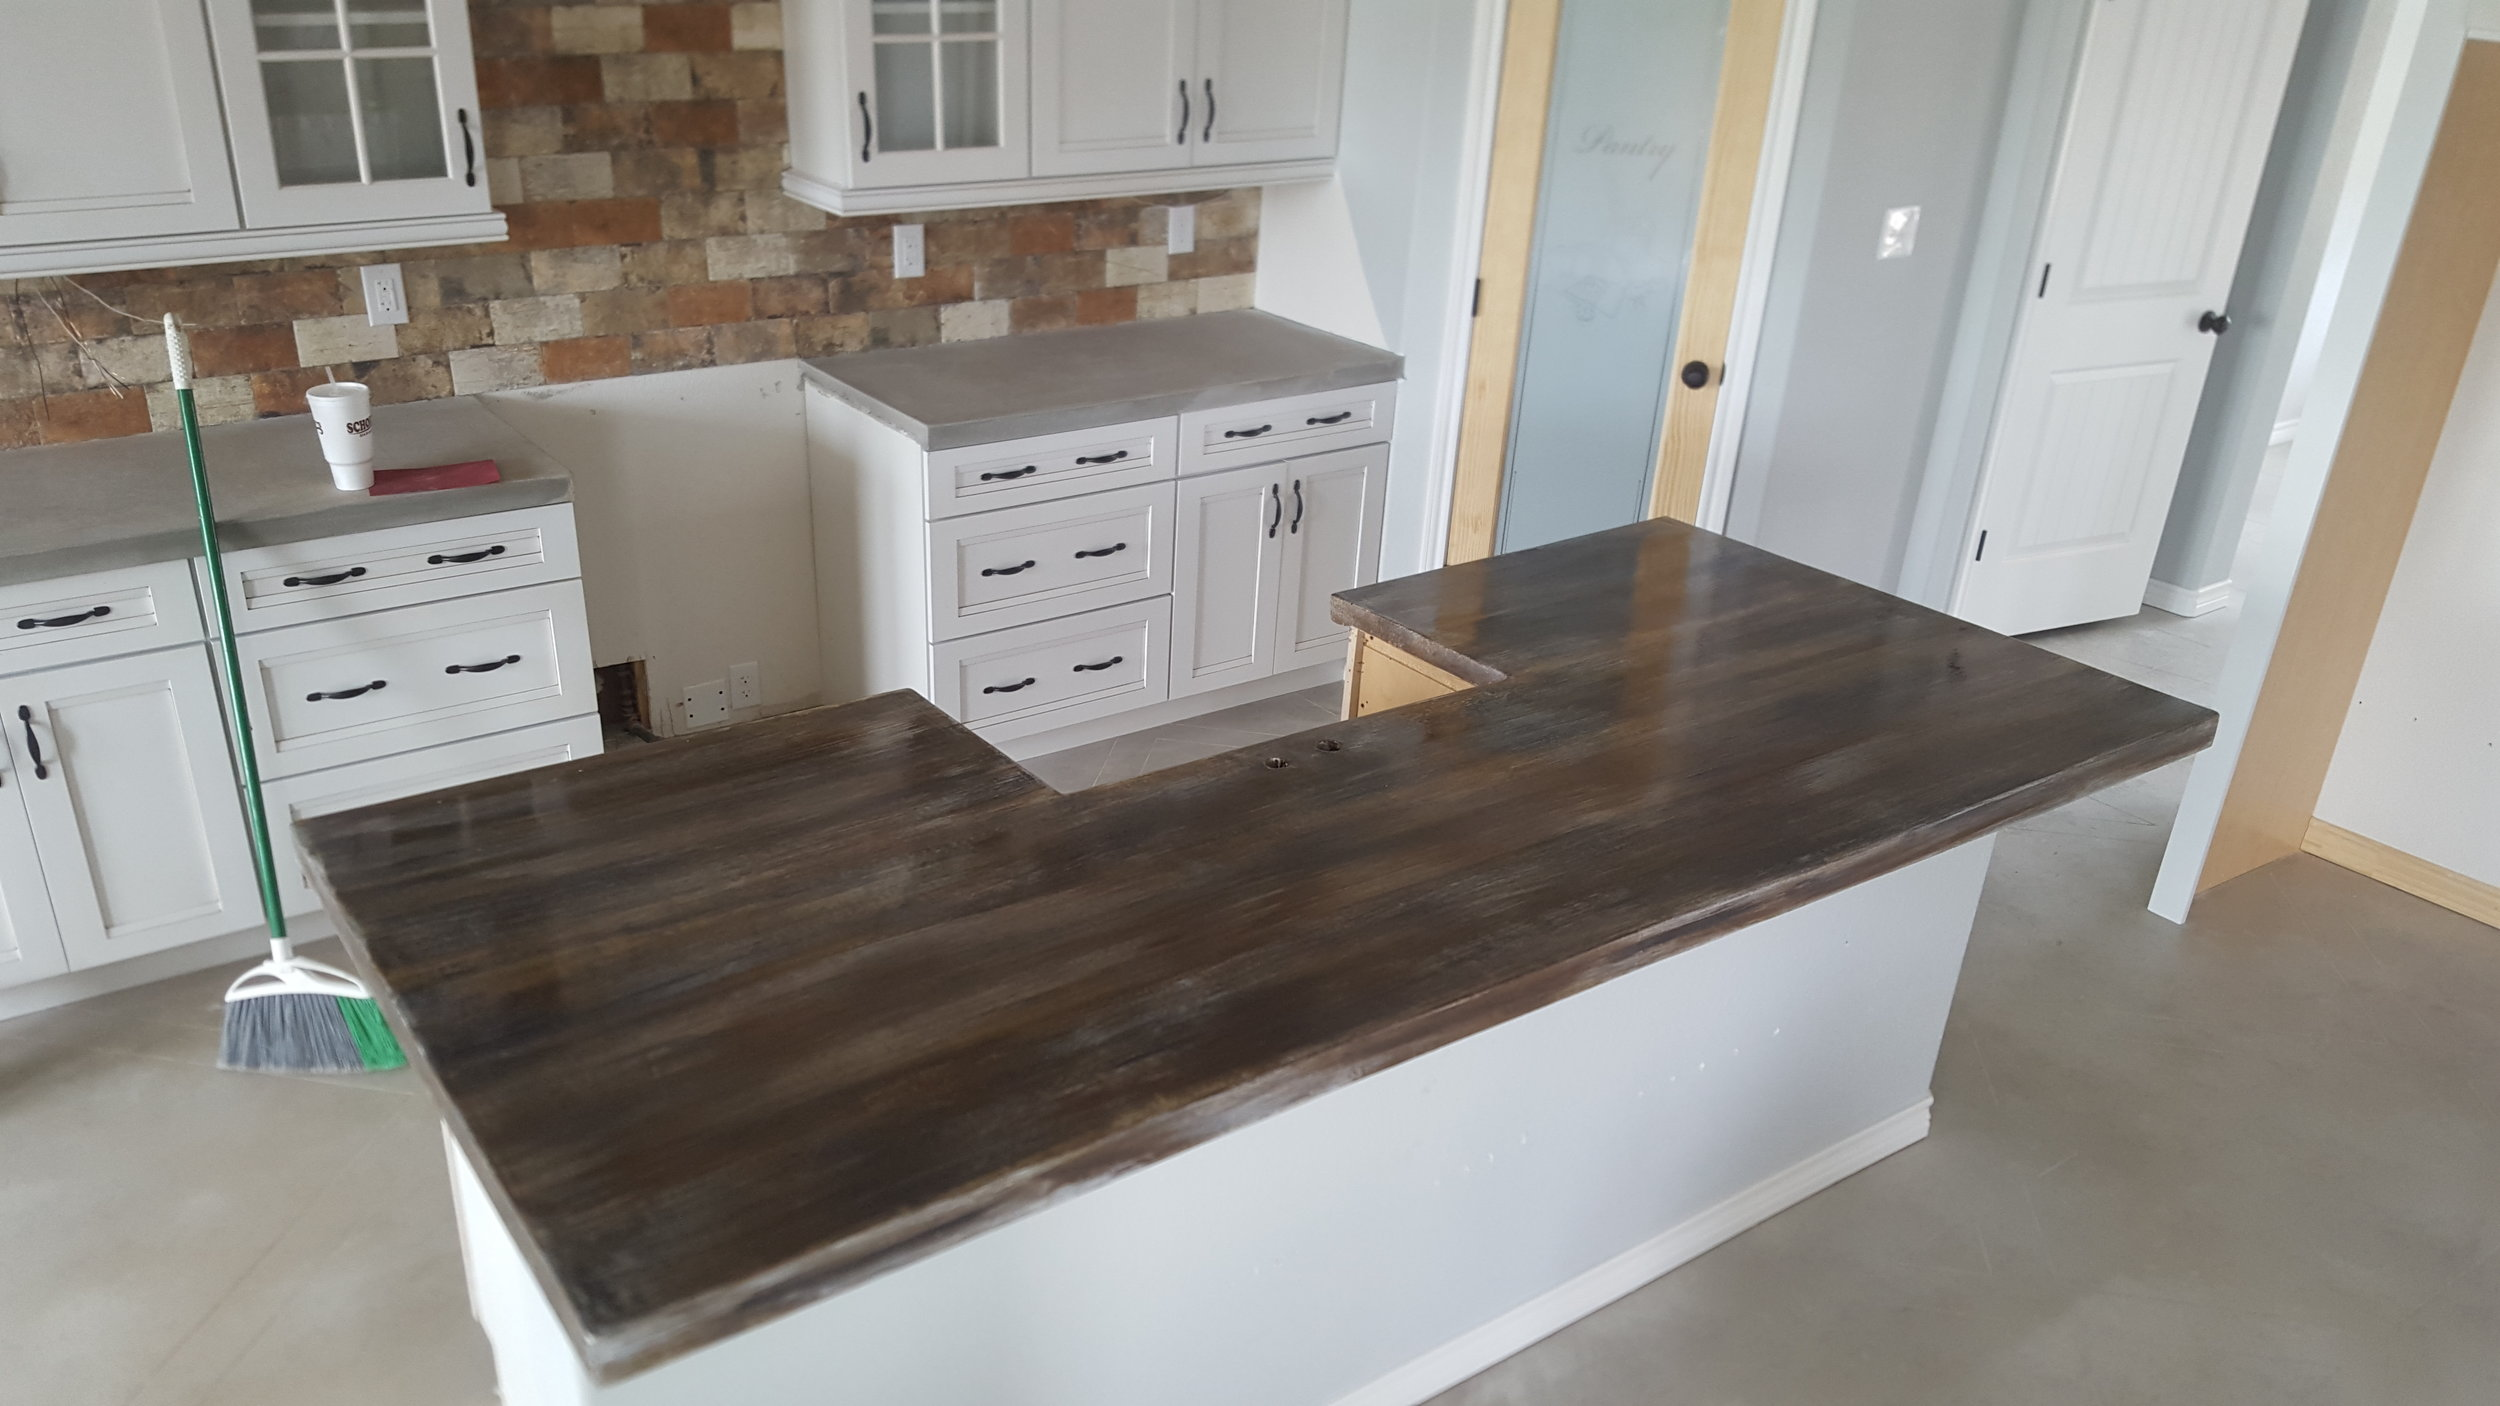 Concrete Countertops Pricing Concrete Countertops Stain And Stamp